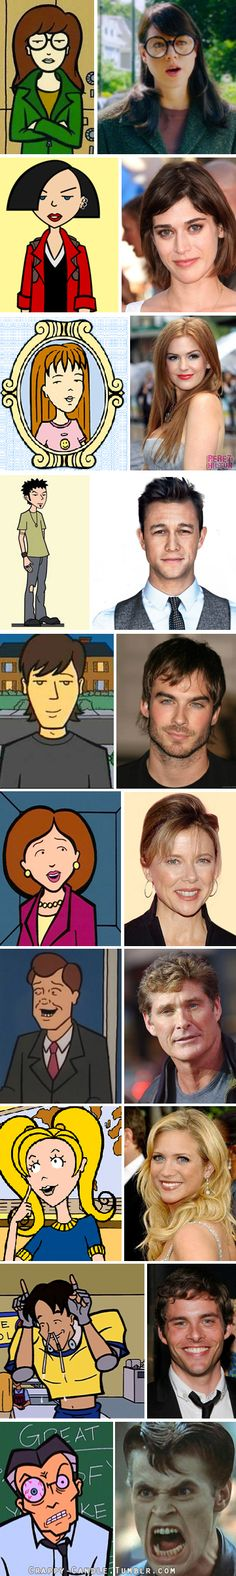 Live Action Daria: Fantasy Cast #mtv  |  http://crappy-candle.tumblr.com/post/56441277092/live-action-daria-movie-fantasy-casting